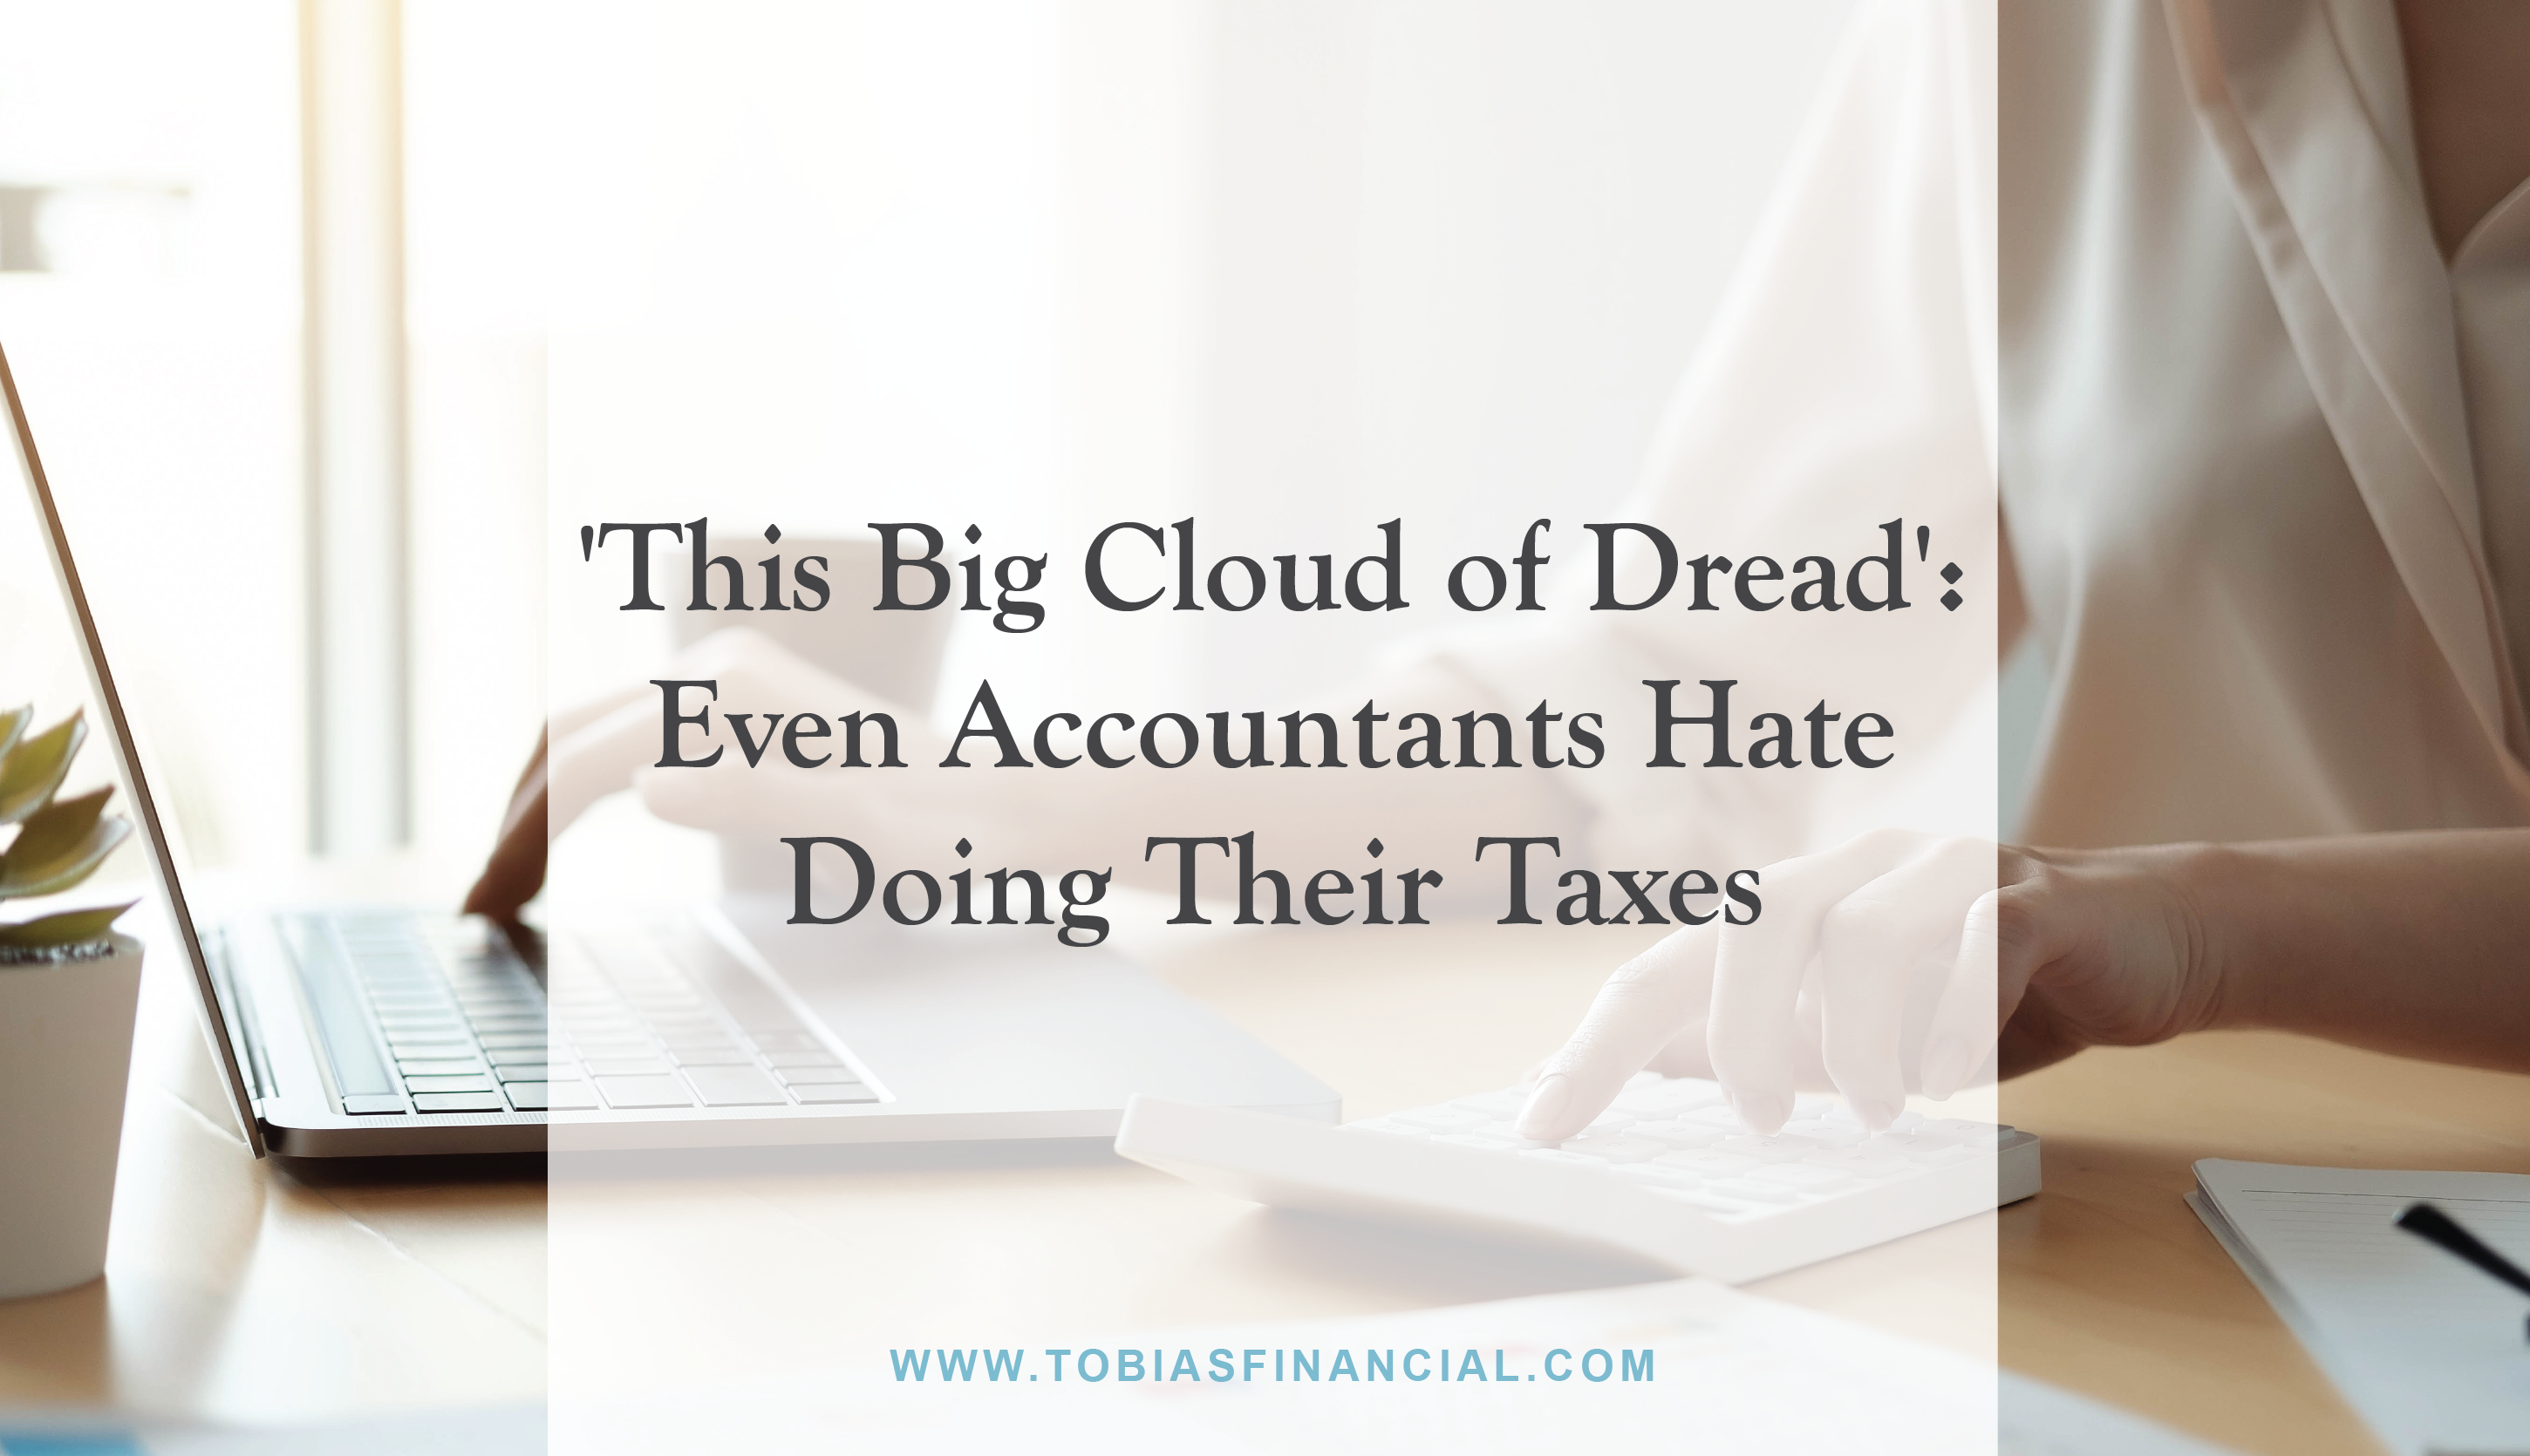 'This Big Cloud of Dread': Even Accountants Hate Doing Their Taxes